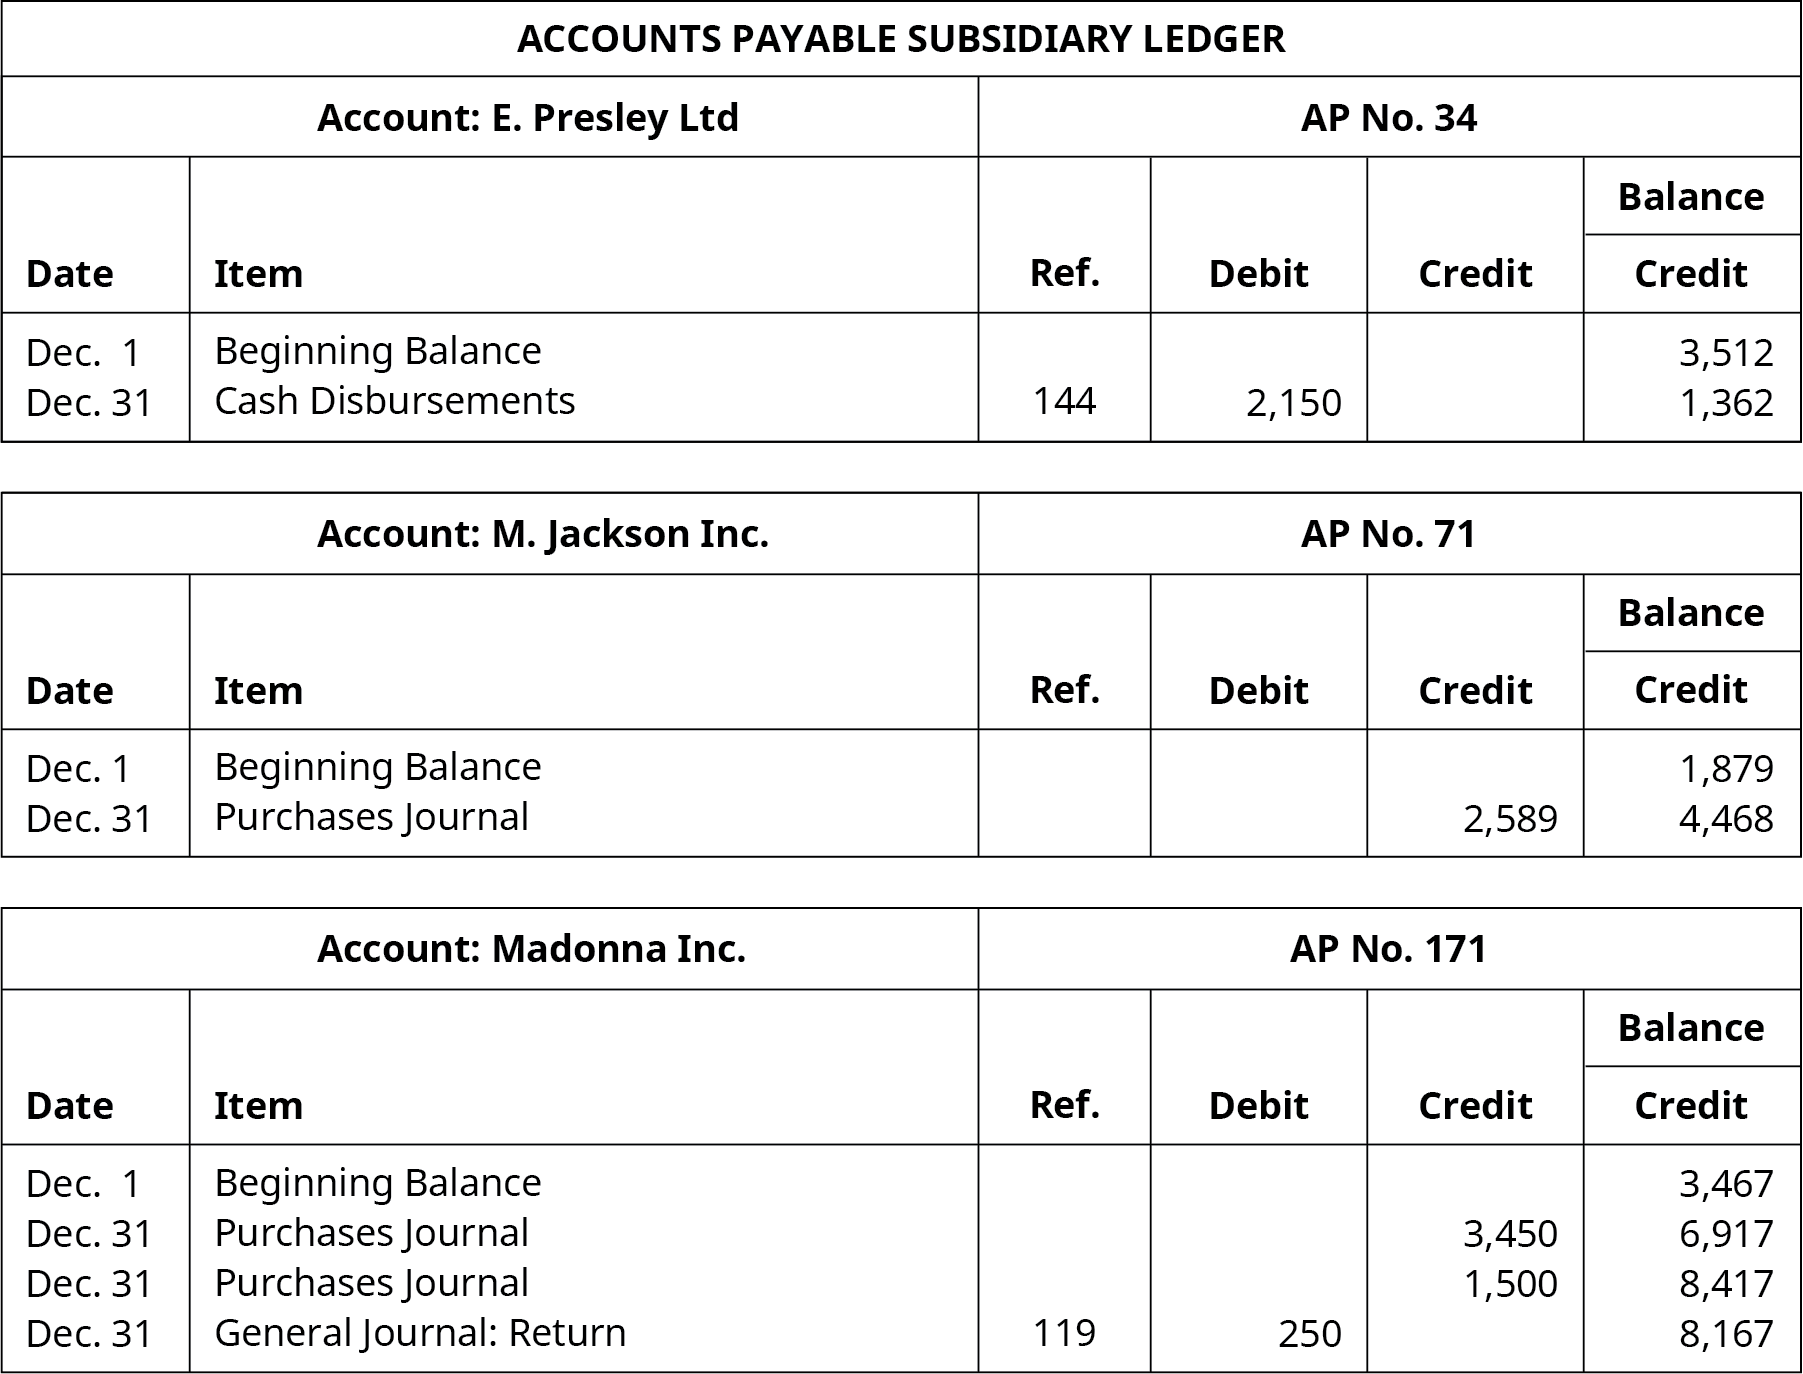 Accounts Payable Subsidiary Ledger. Six Columns, labeled left to right: Date, Item, Reference, Debit, Credit, Balance. E. Presley, Ltd. Account, AP Number 34. Line One: December 1; Beginning Balance; Blank; Blank; Blank; 3,512. Line Two: December 31; Cash Disbursements; 144; 2,150; Blank; 1,362. M. Jackson, Inc. Account, AP Number 71. Line One: December 1; Beginning Balance; Blank; Blank; Blank; 1,879. Line Two: December 31; Purchases Journal; Blank; Blank; 2,589; 4,468. Madonna, Inc. Account, AP Number 171. Line One: December 1; Beginning Balance; Blank; Blank; Blank; 3,467. Line Two: December 31; Purchases Journal; Blank; Blank; 3,450; 6,917. Line Three: December 31; Purchases Journal; Blank; Blank: 1,500; 8,417. Line Four: December 31; General Journal, Return; 119; 250; Blank; 8,167.